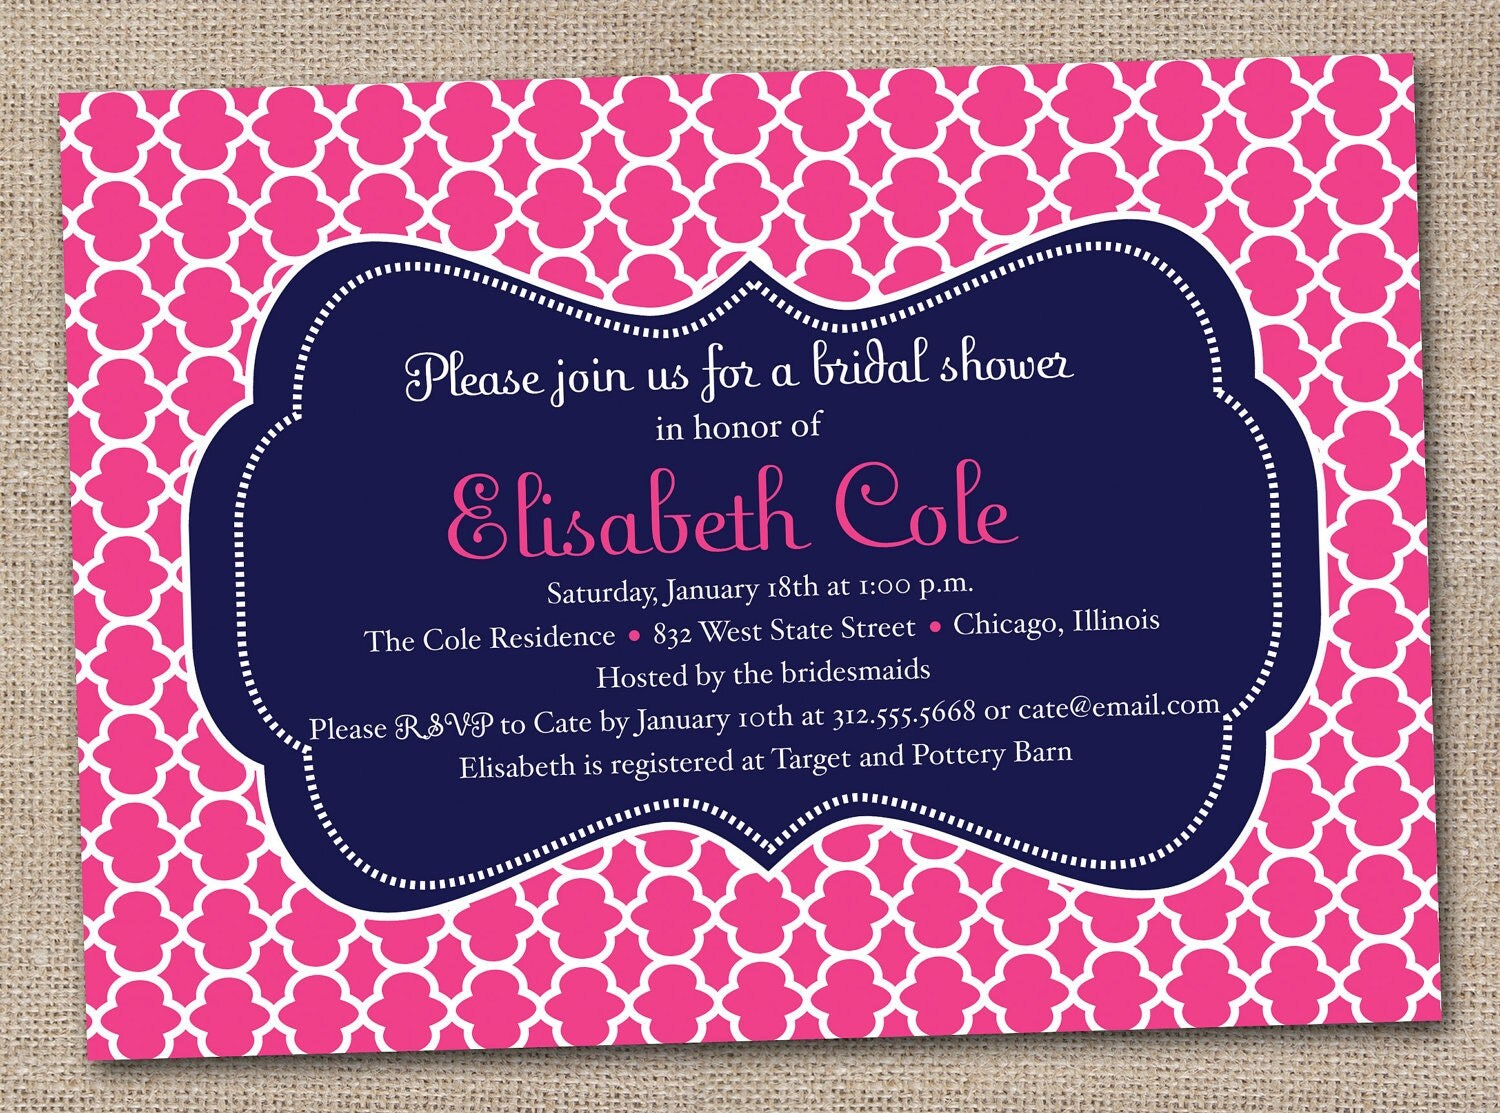 Wedding Shower Invitations Free: Printable Bridal Shower Invitations Fuchsia Pink And Navy Blue